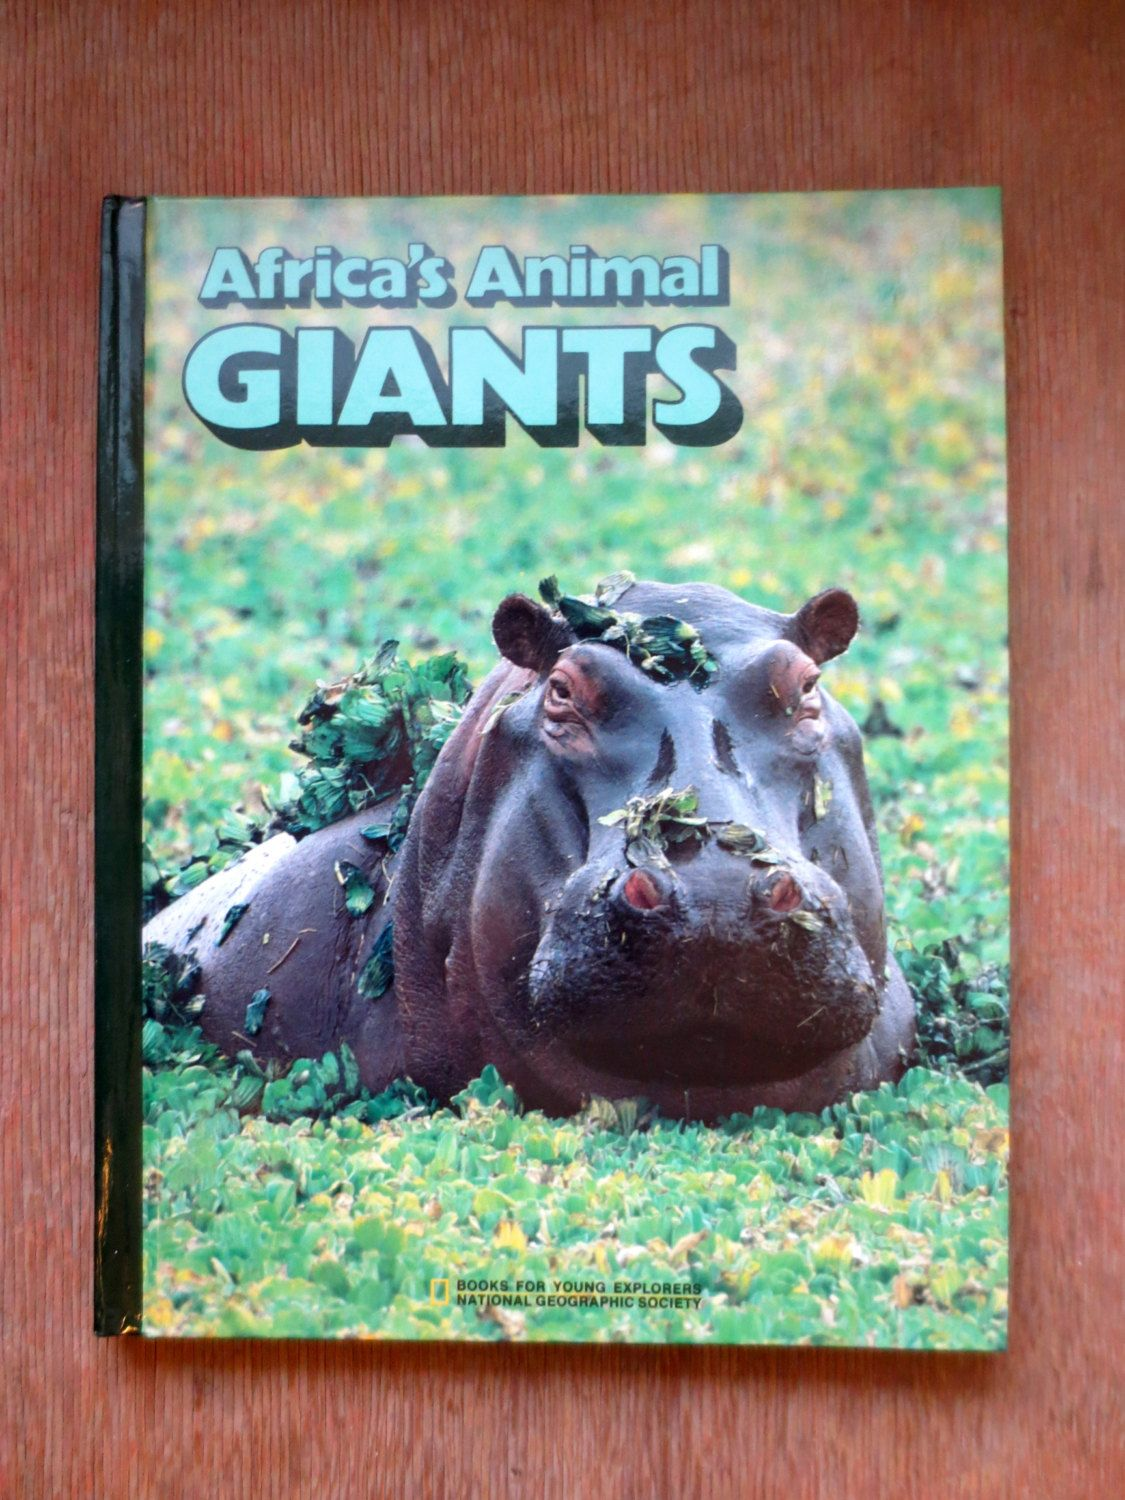 Africa S Animal Giants 1987 By Jane R Mccauley Vintage Childrens Non Fiction Book National Geographic Africa Animals Animals Meerkat Mail